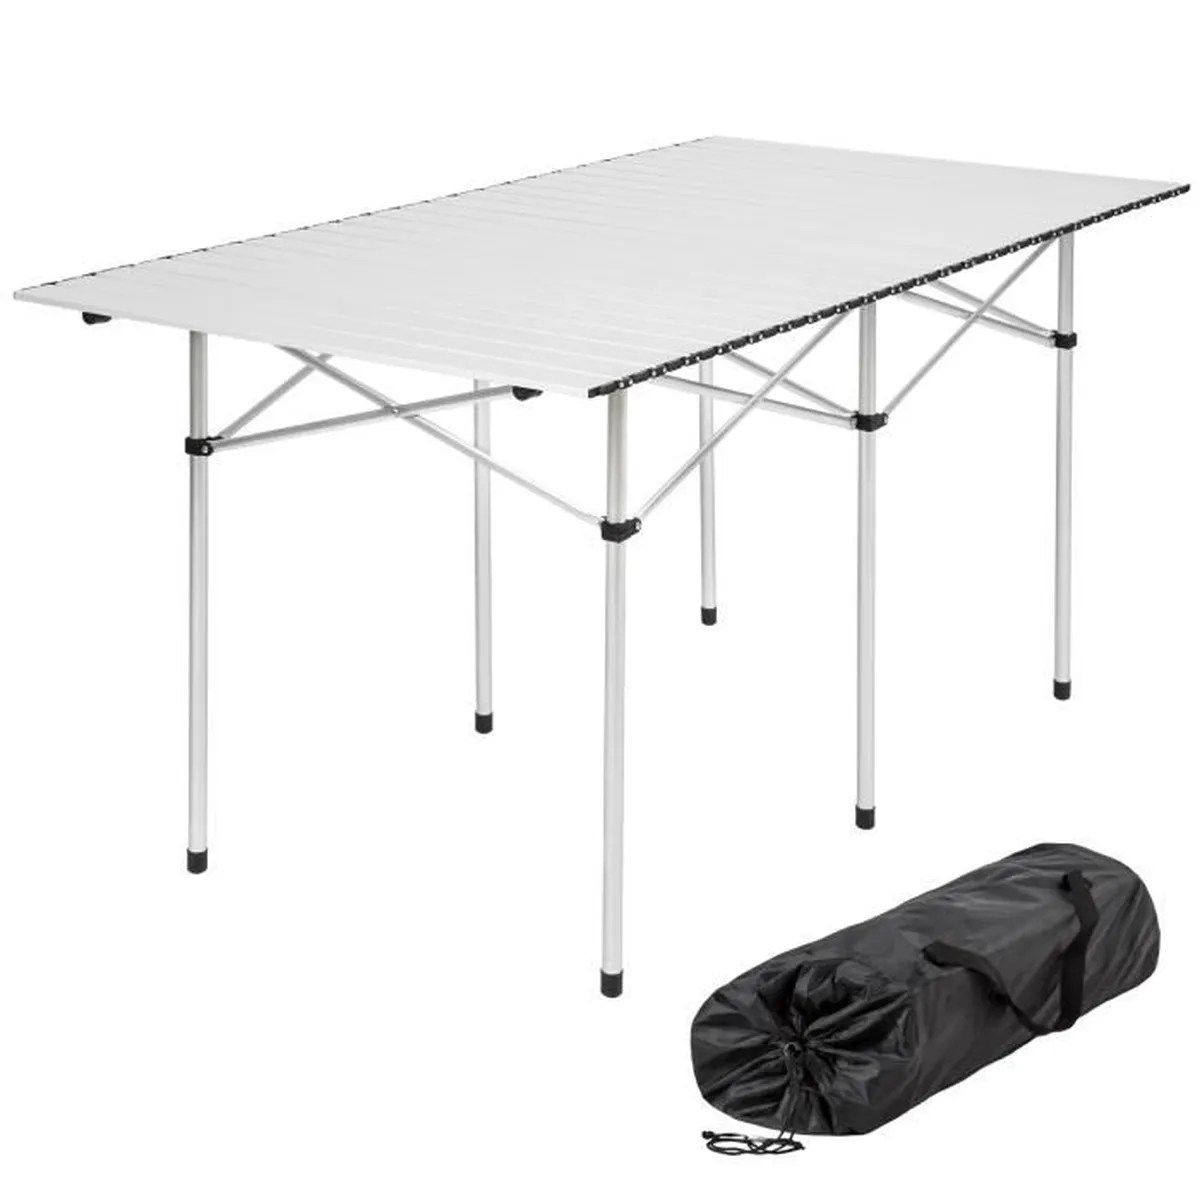 Table Valise + 4 Tabourets Tectake Table Pliante De Camping 4 à 6 Places 140 Cm X 70 Cm X 70 Cm